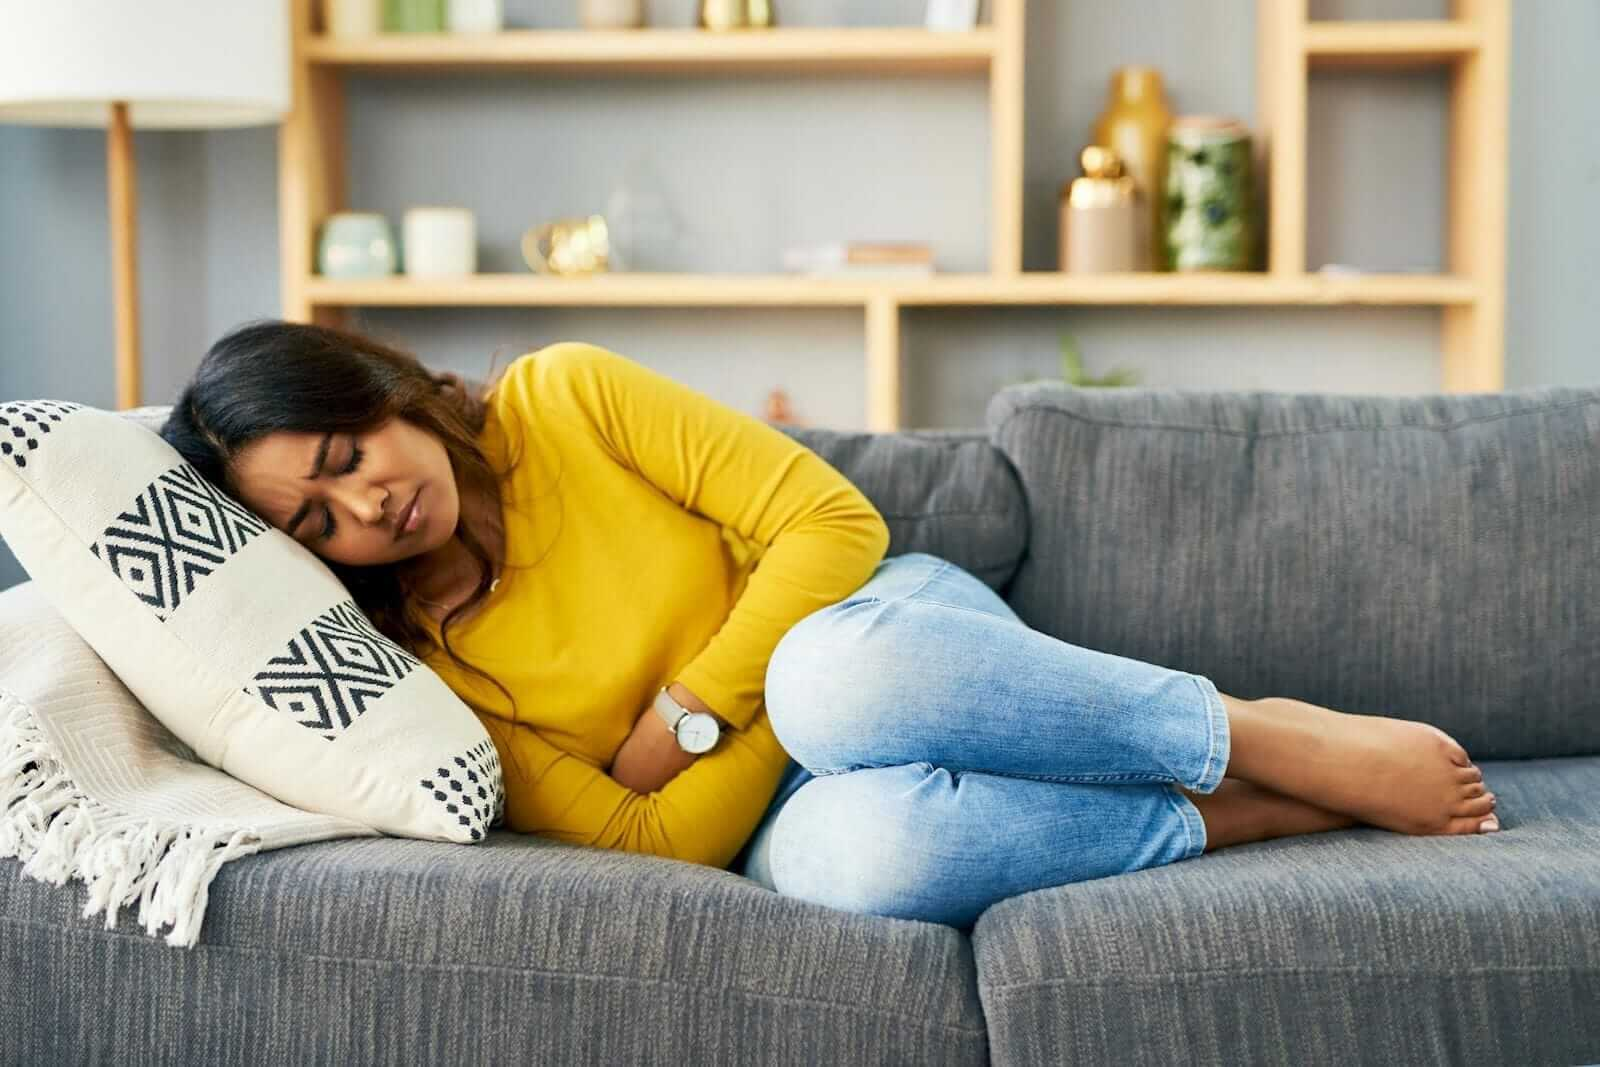 Woman holds arms over her stomach in pain laying on couch